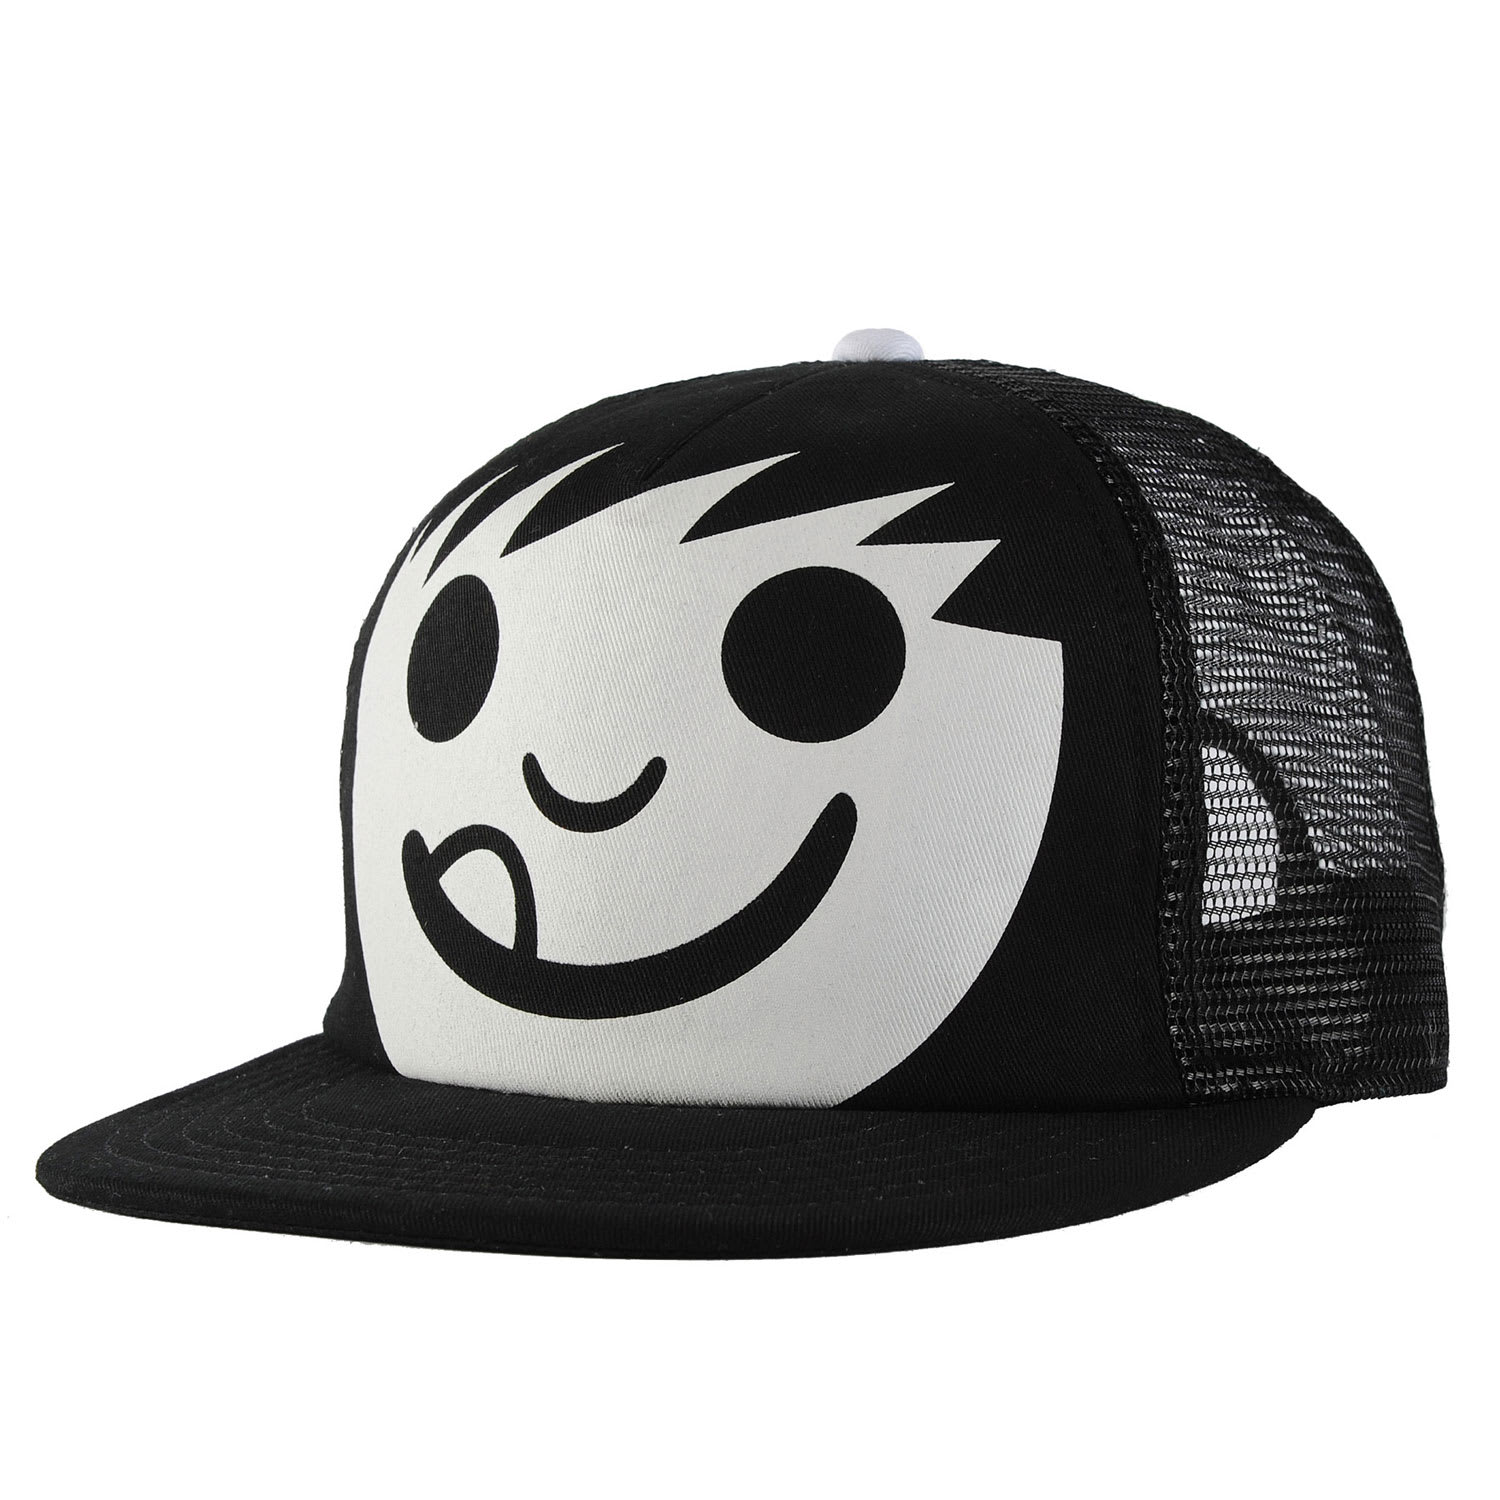 Neff Blam Cap Black - Men's